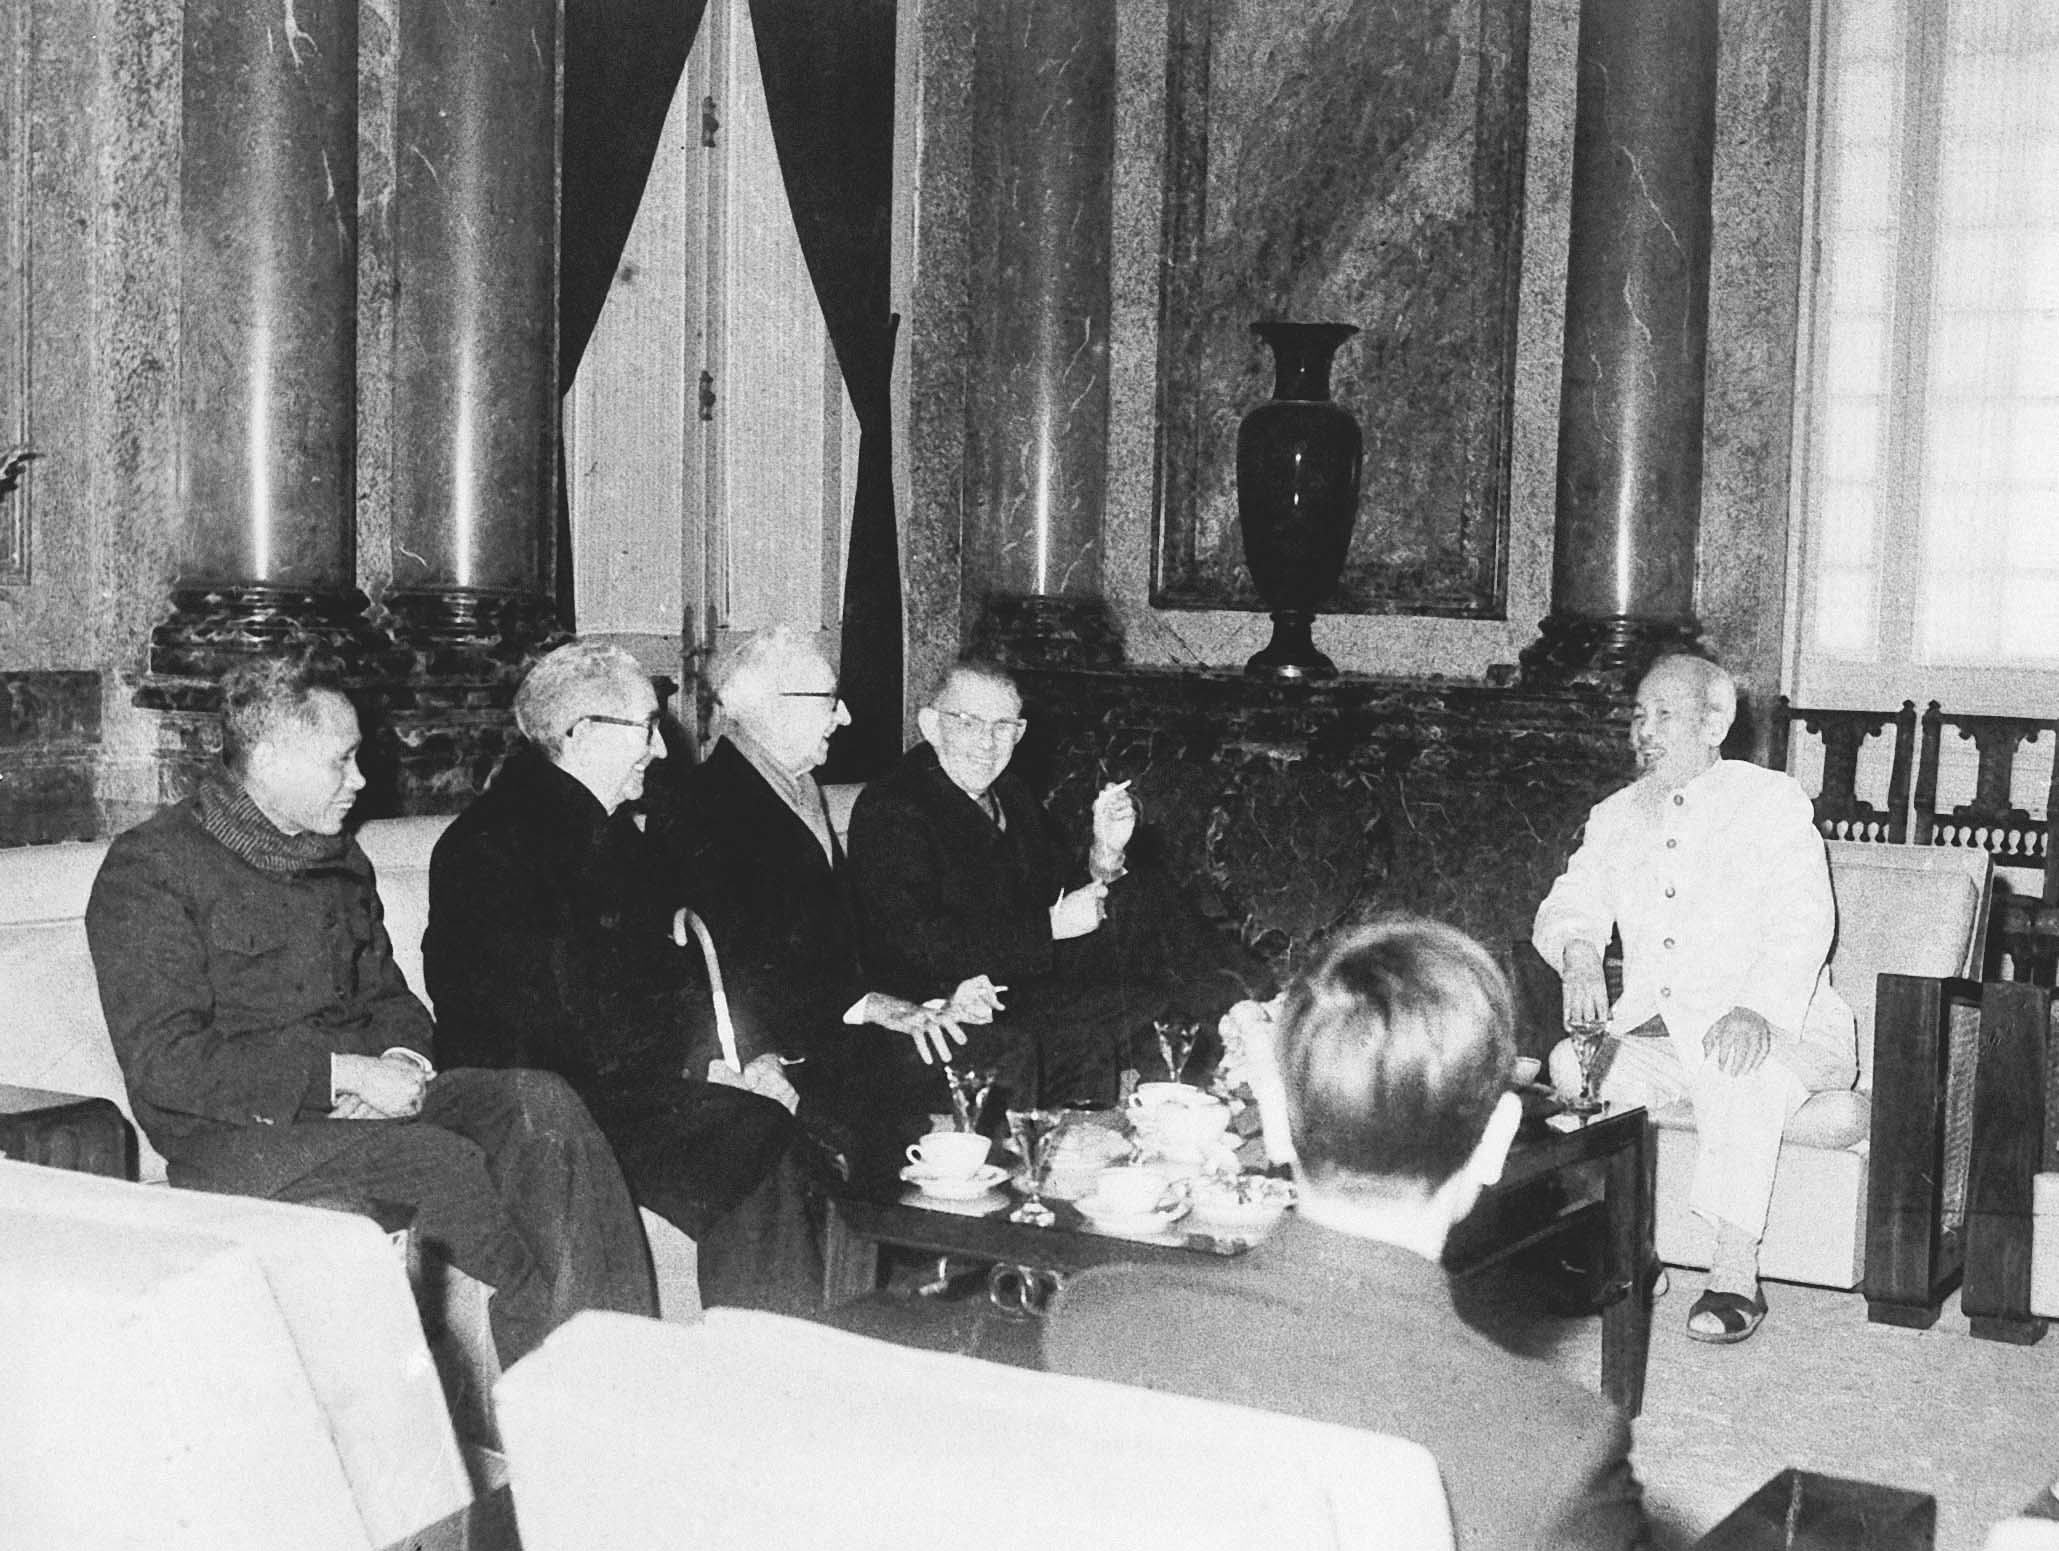 President Ho Chi Minh receiving the American intellectual personalities who protested against the war in Vietnam (January 17th, 1967)